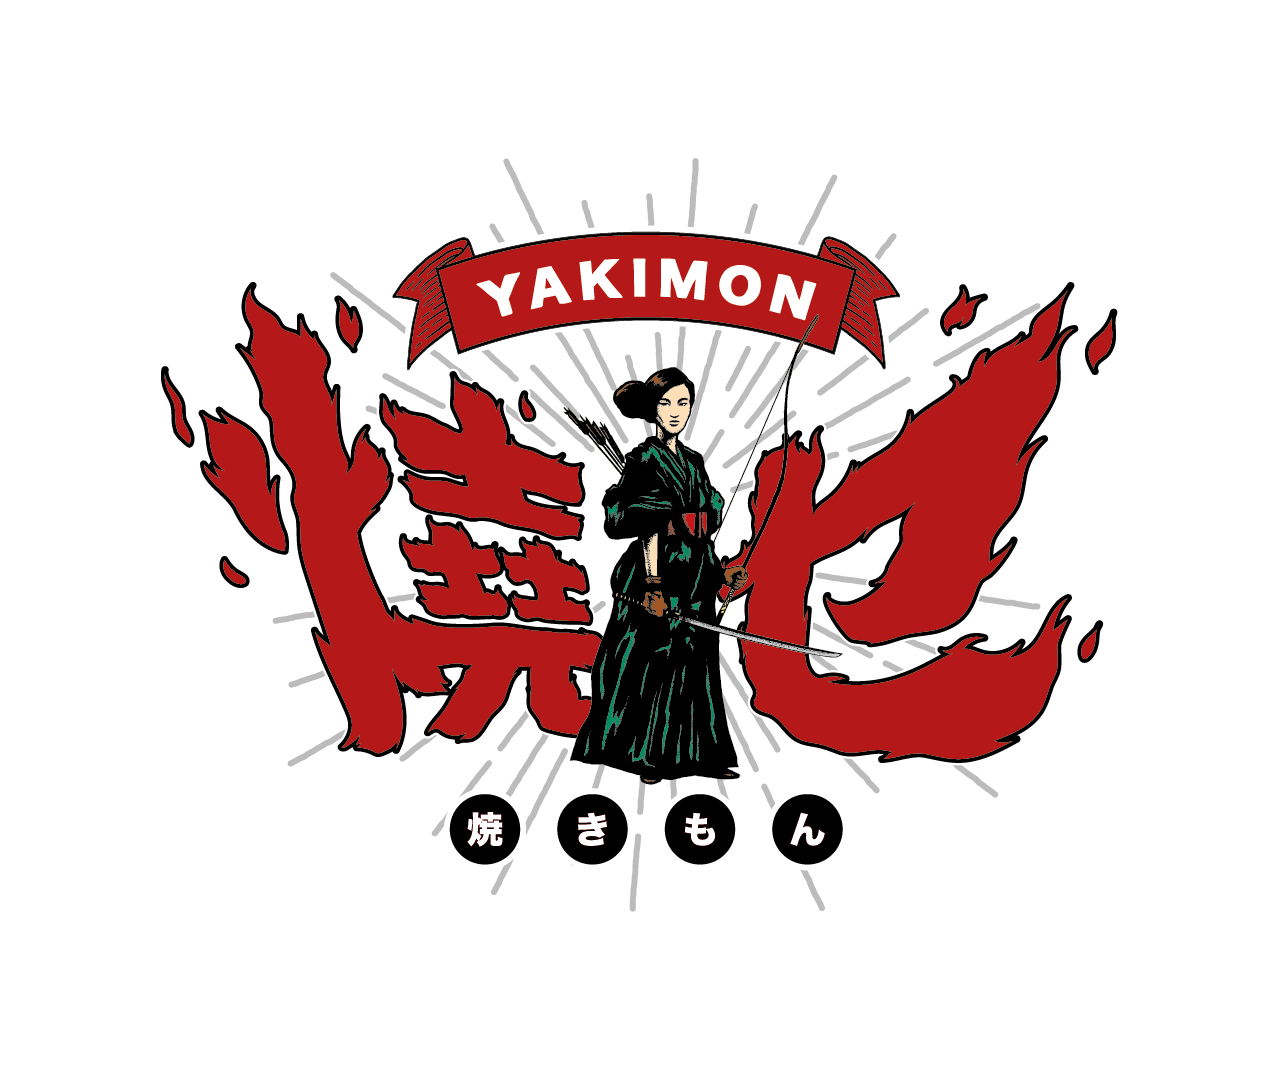 Yakimon-BrandLogo-01